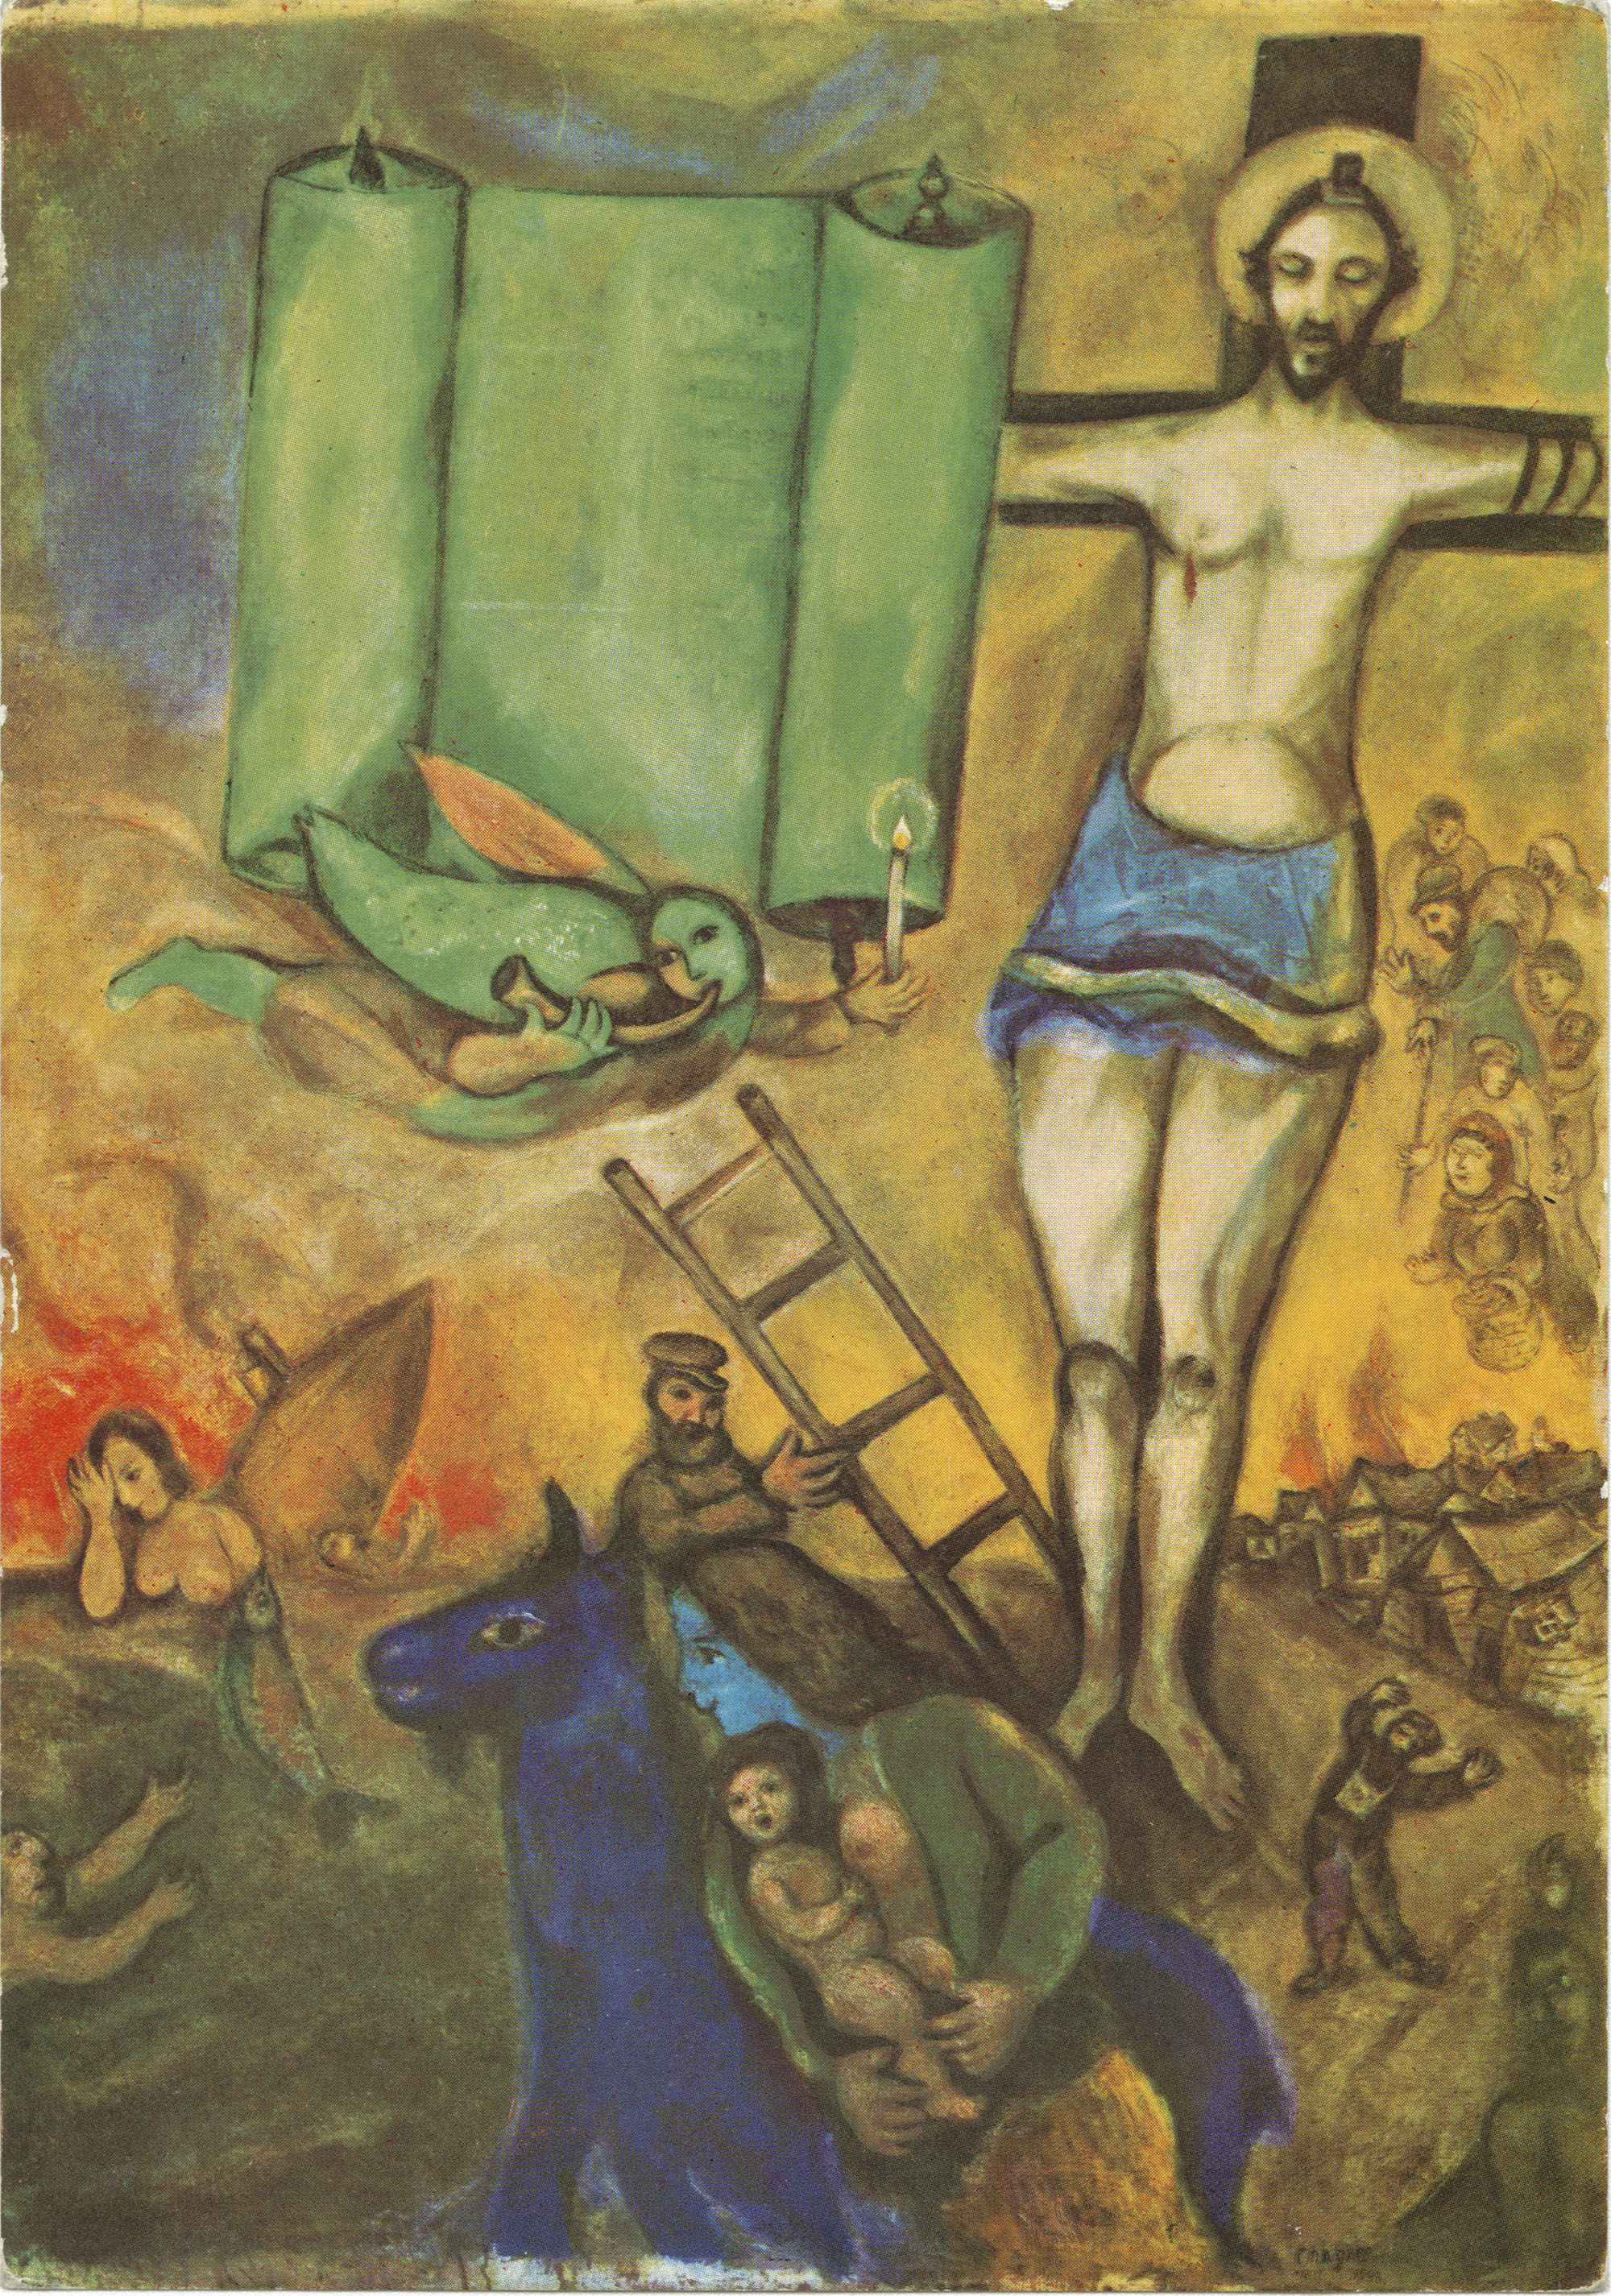 Marc Chagall. Crucifixion en jaune / Crucifixion in yellow.